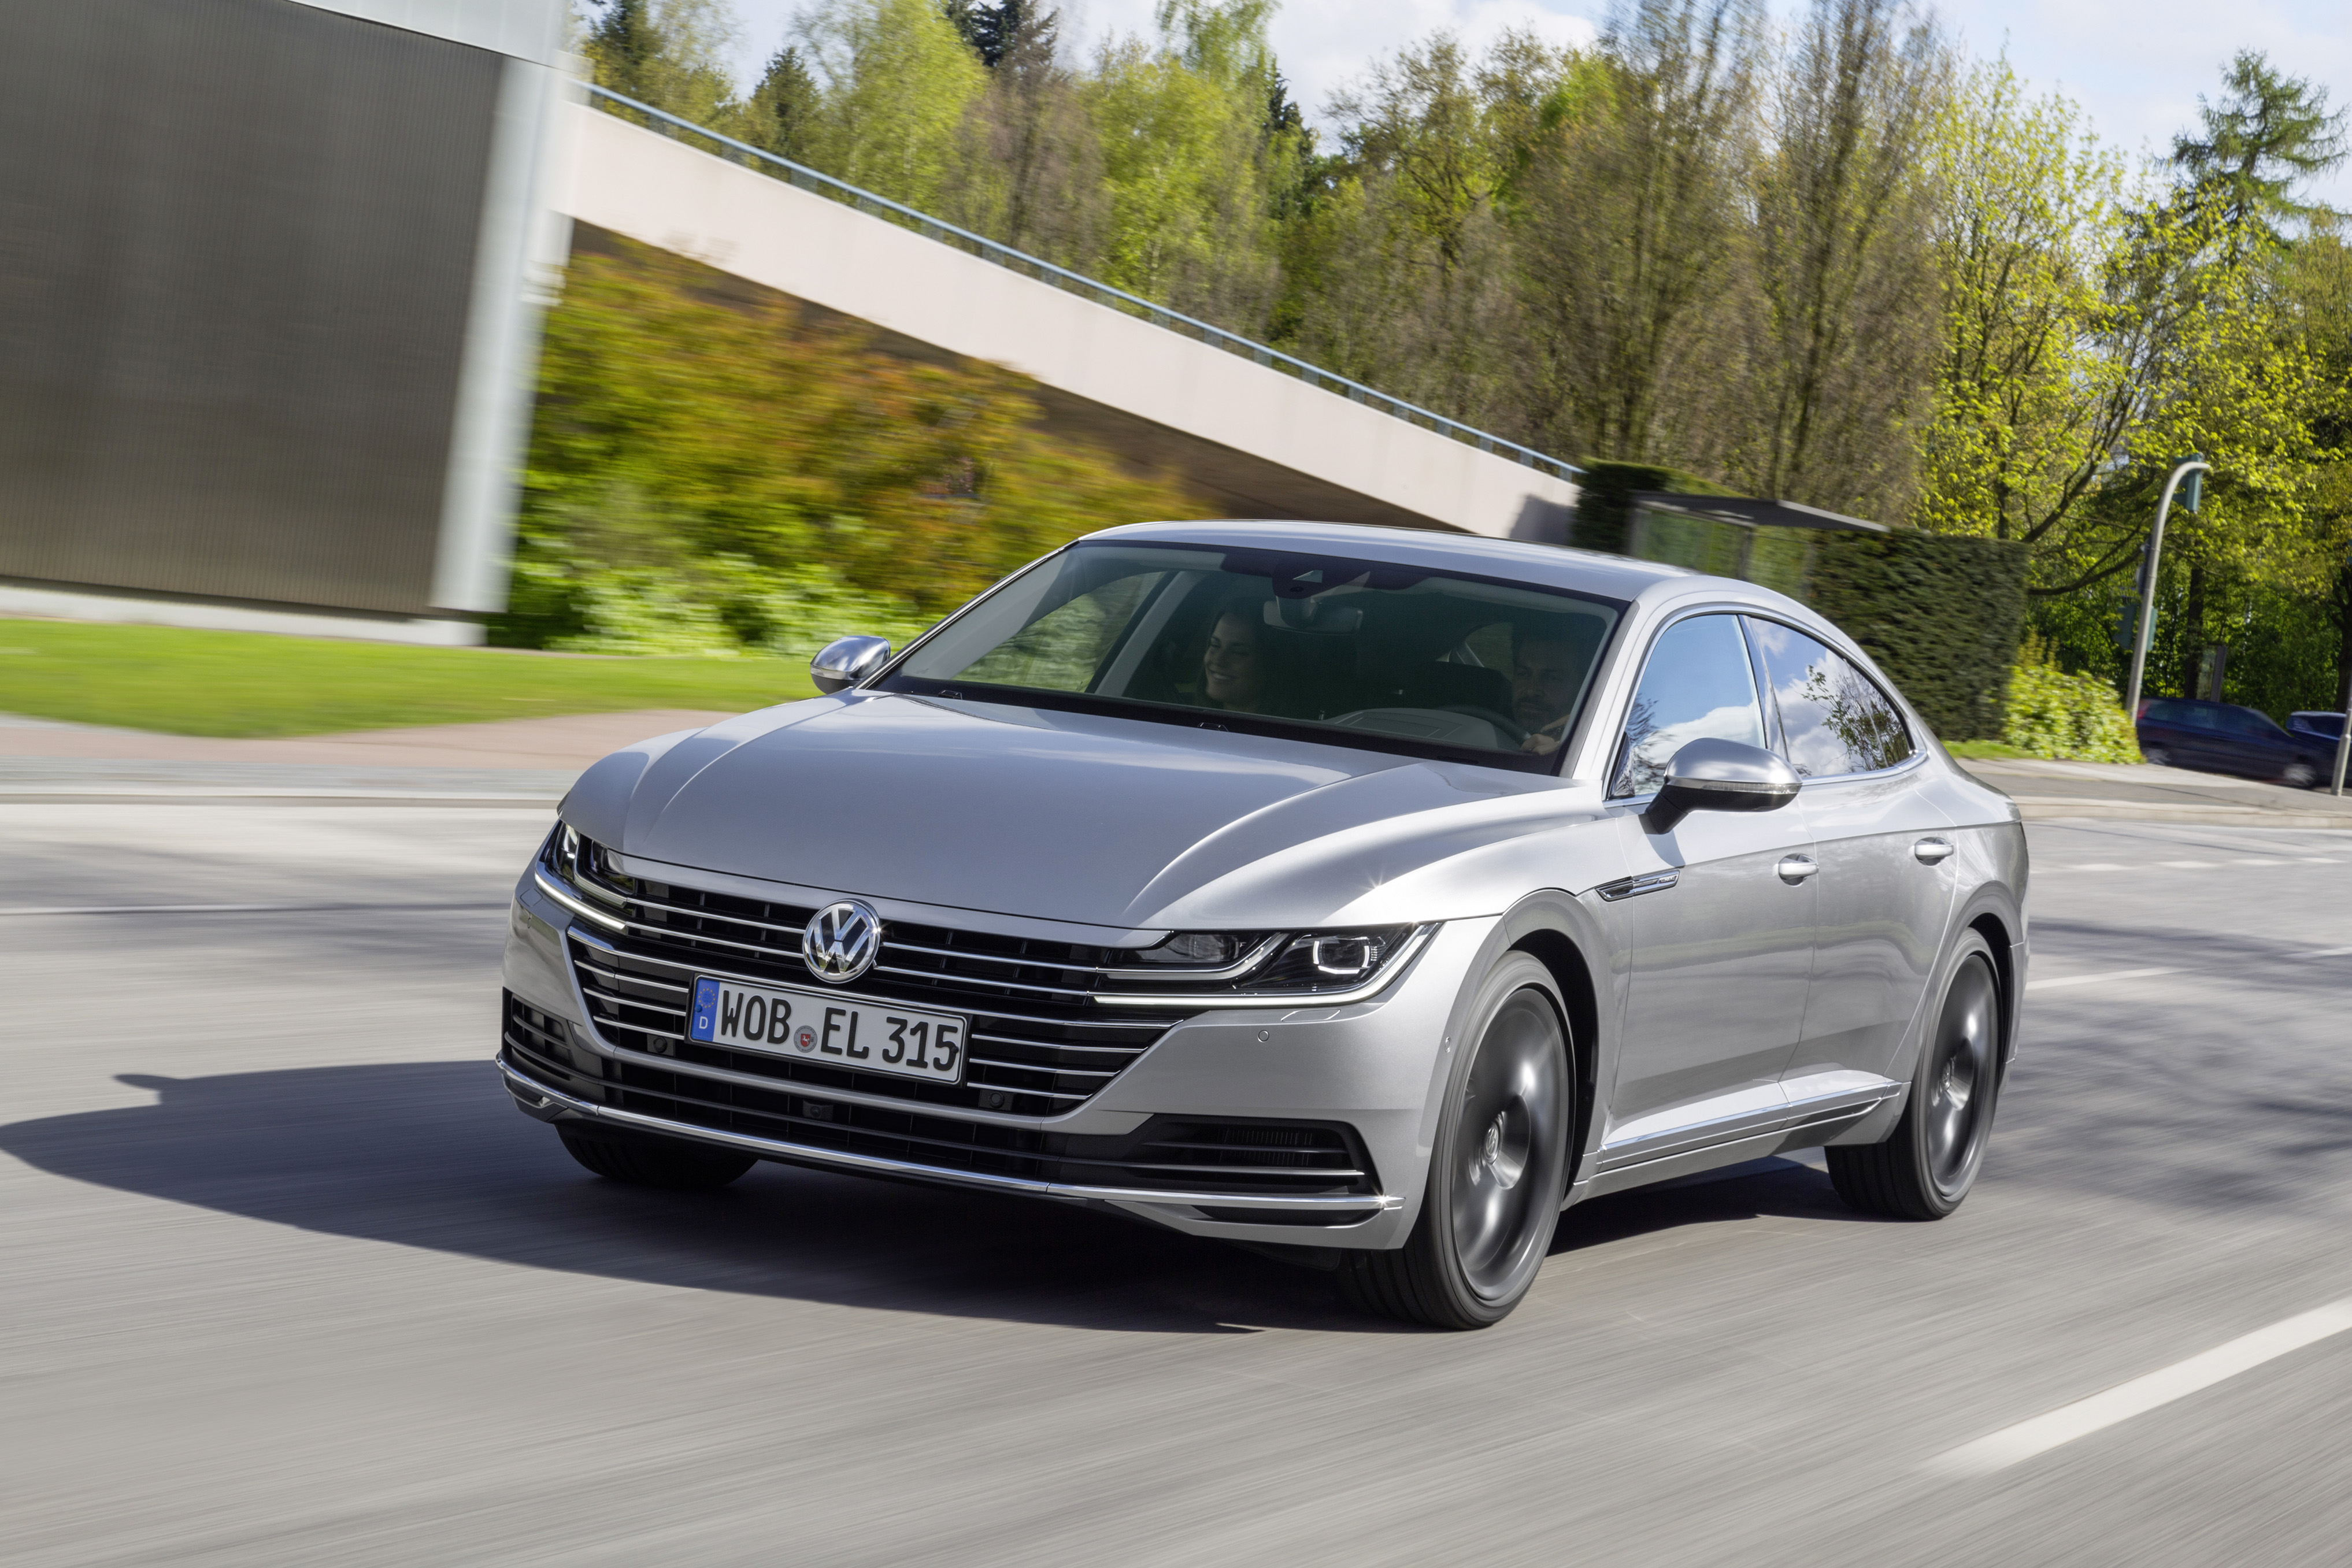 Gallery Volkswagen Arteon New Cc In Detail Image 667137